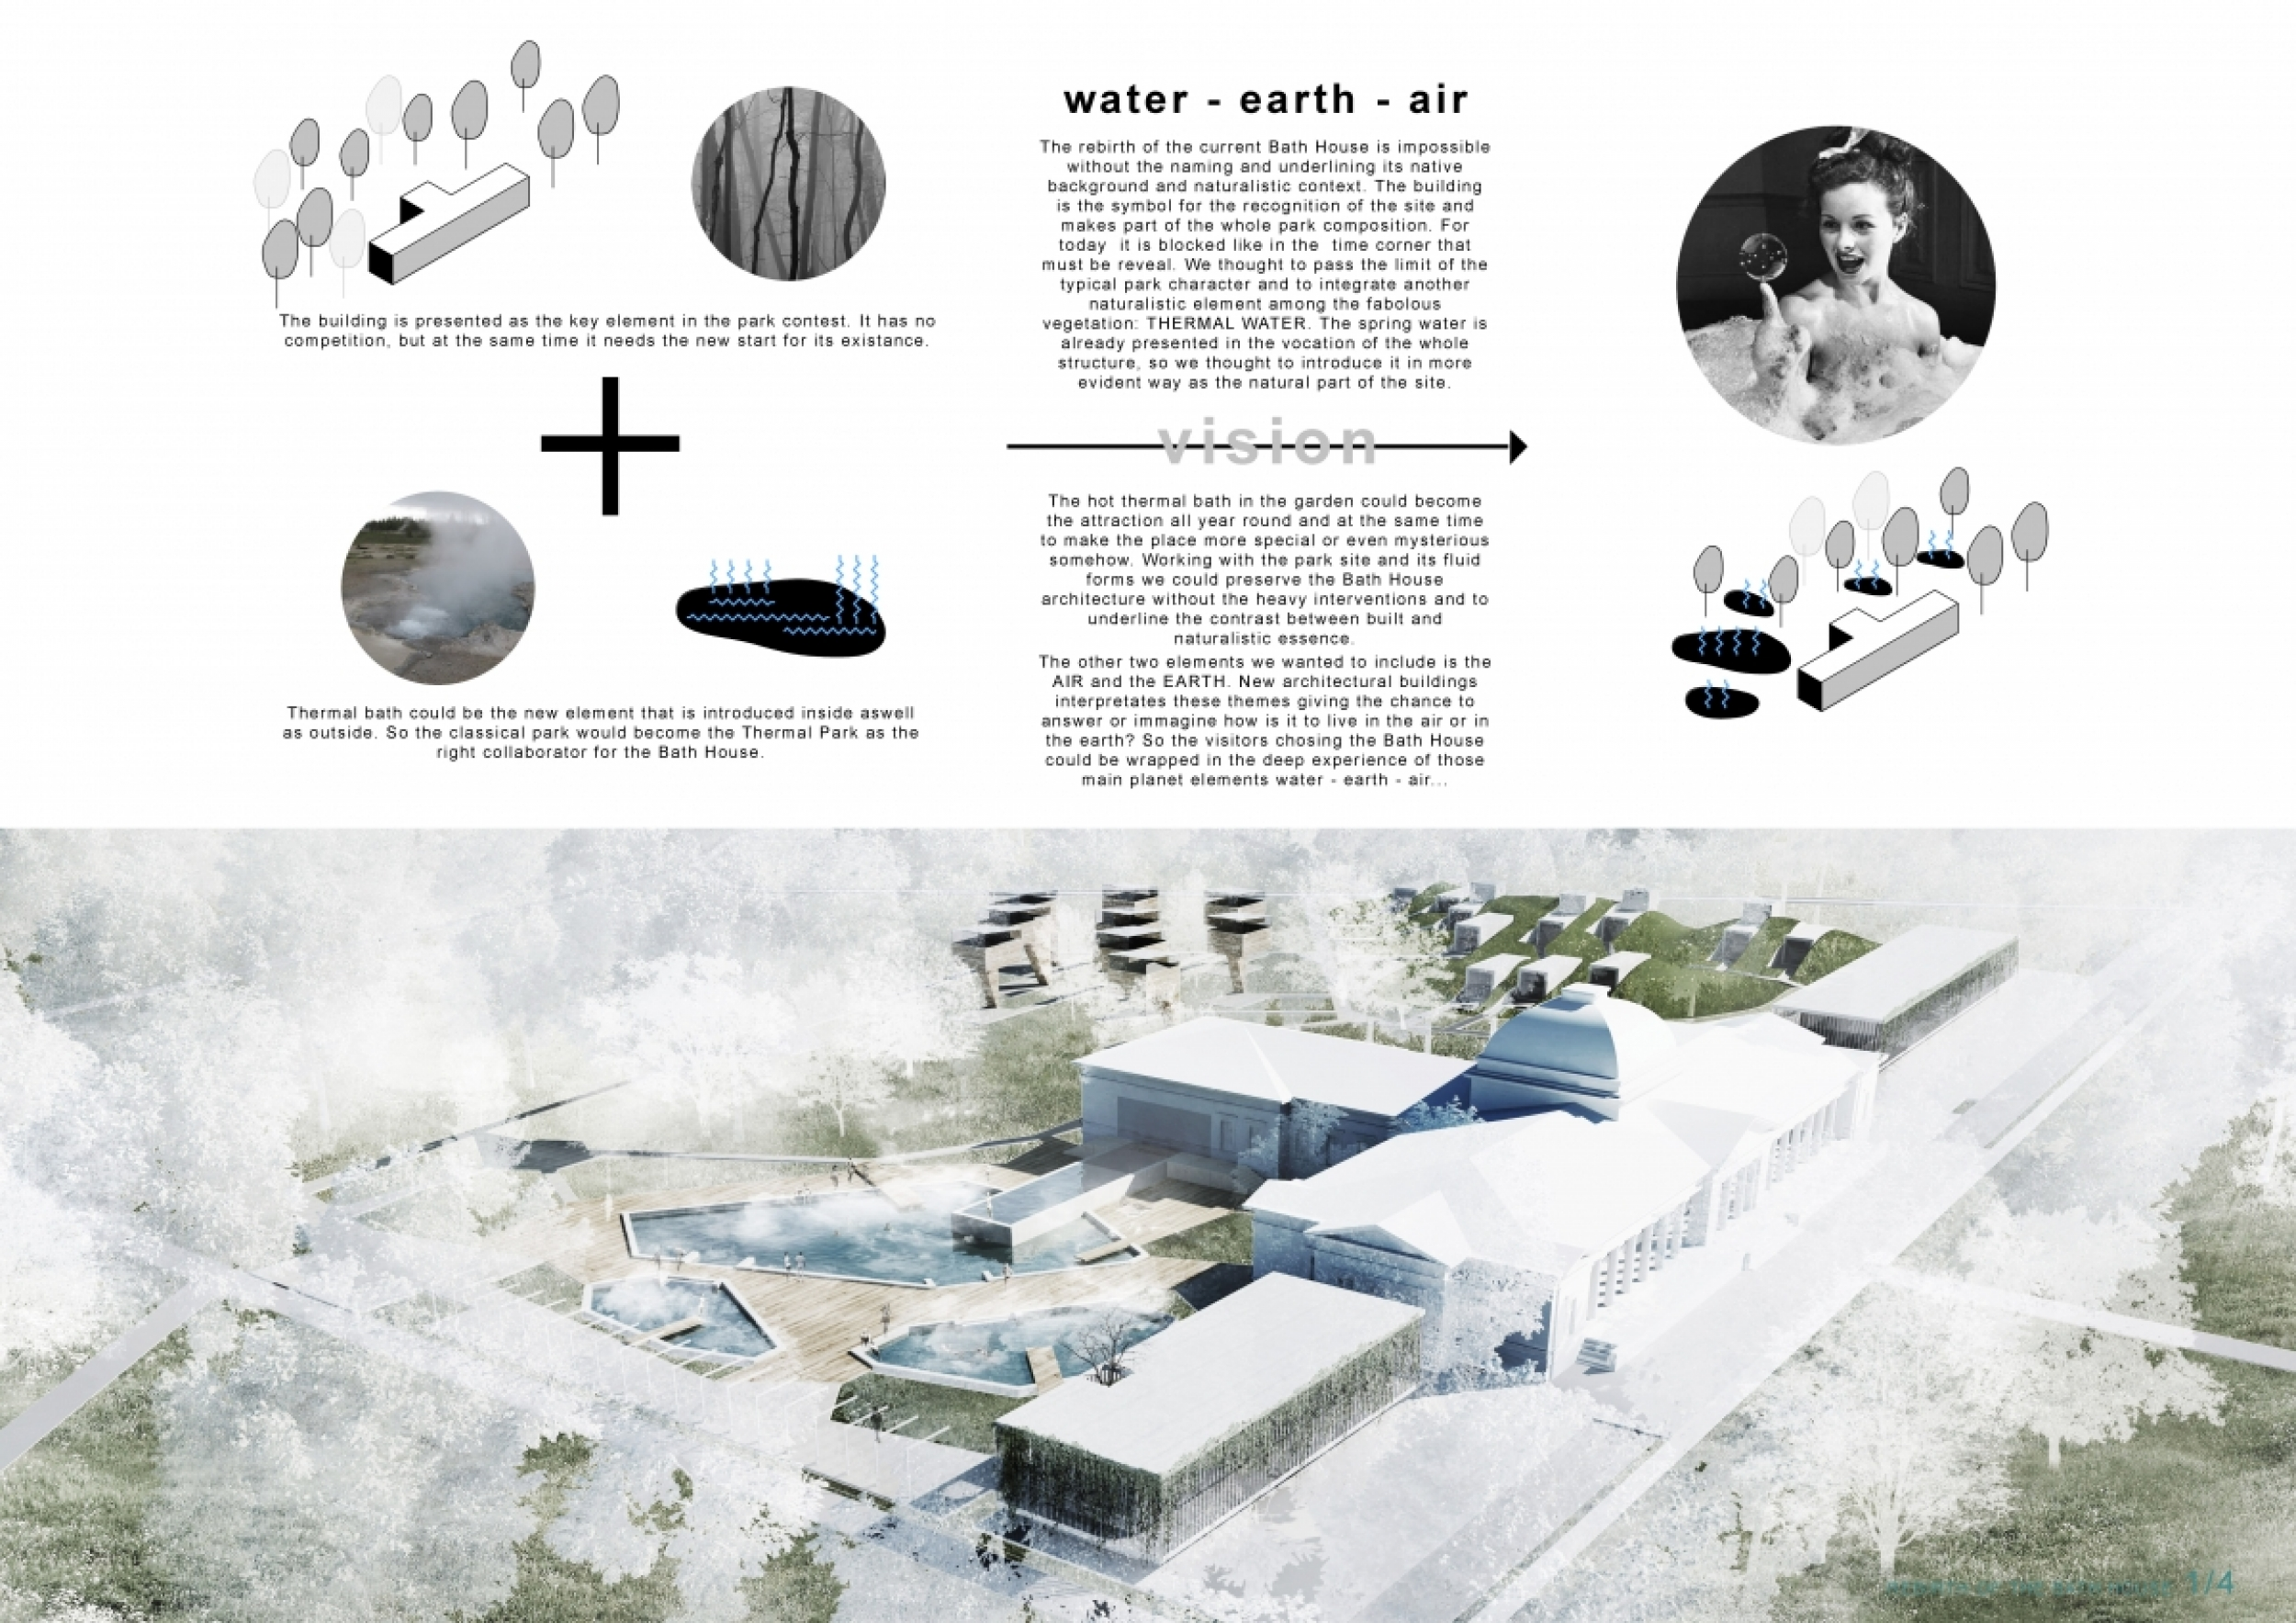 Architecture House Competition rebirth of the bath house competition winners